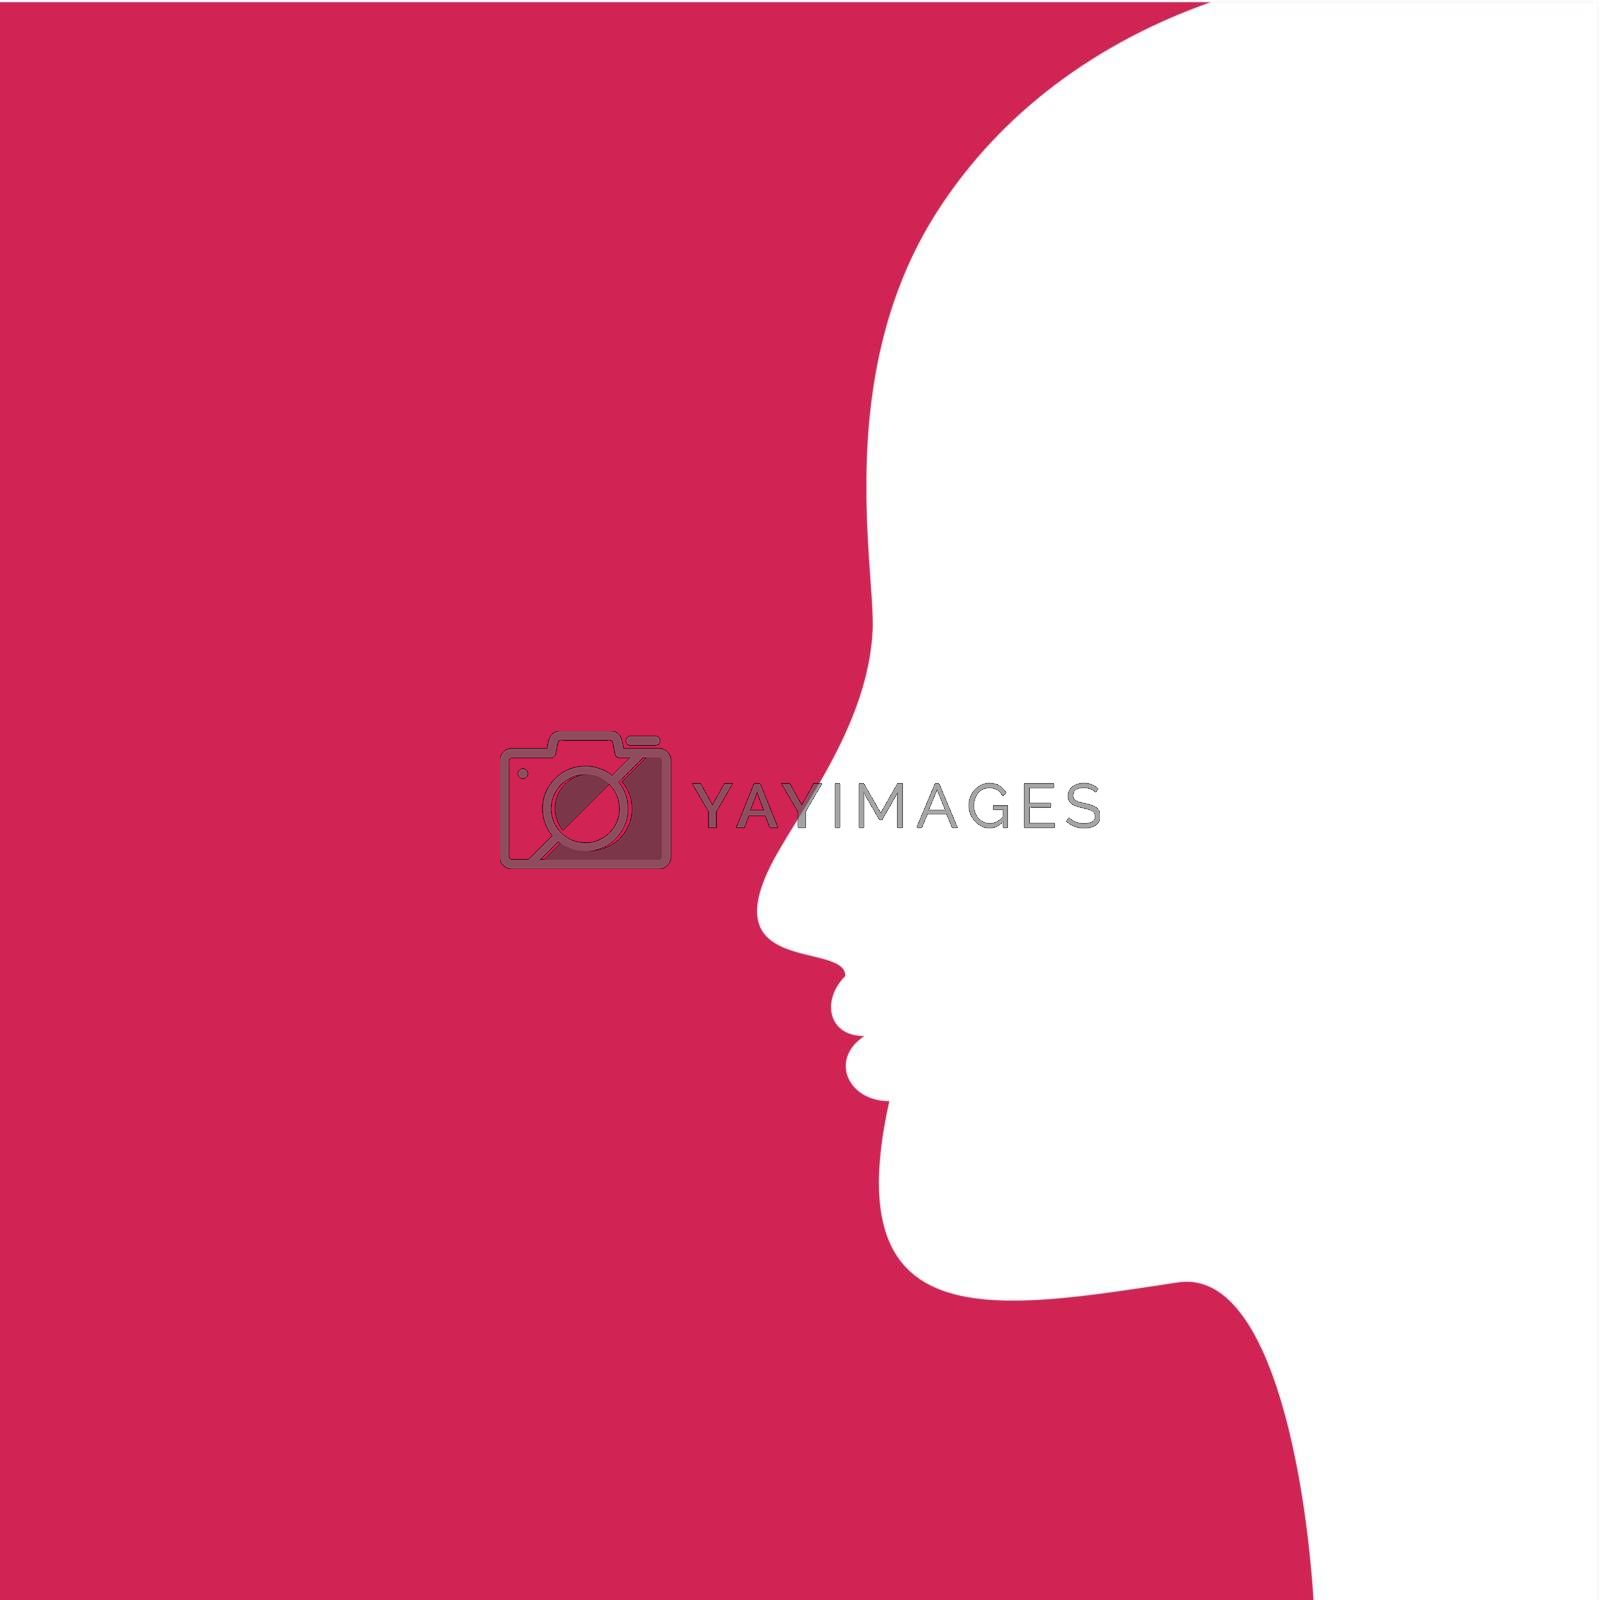 White head of the boy on a pink background